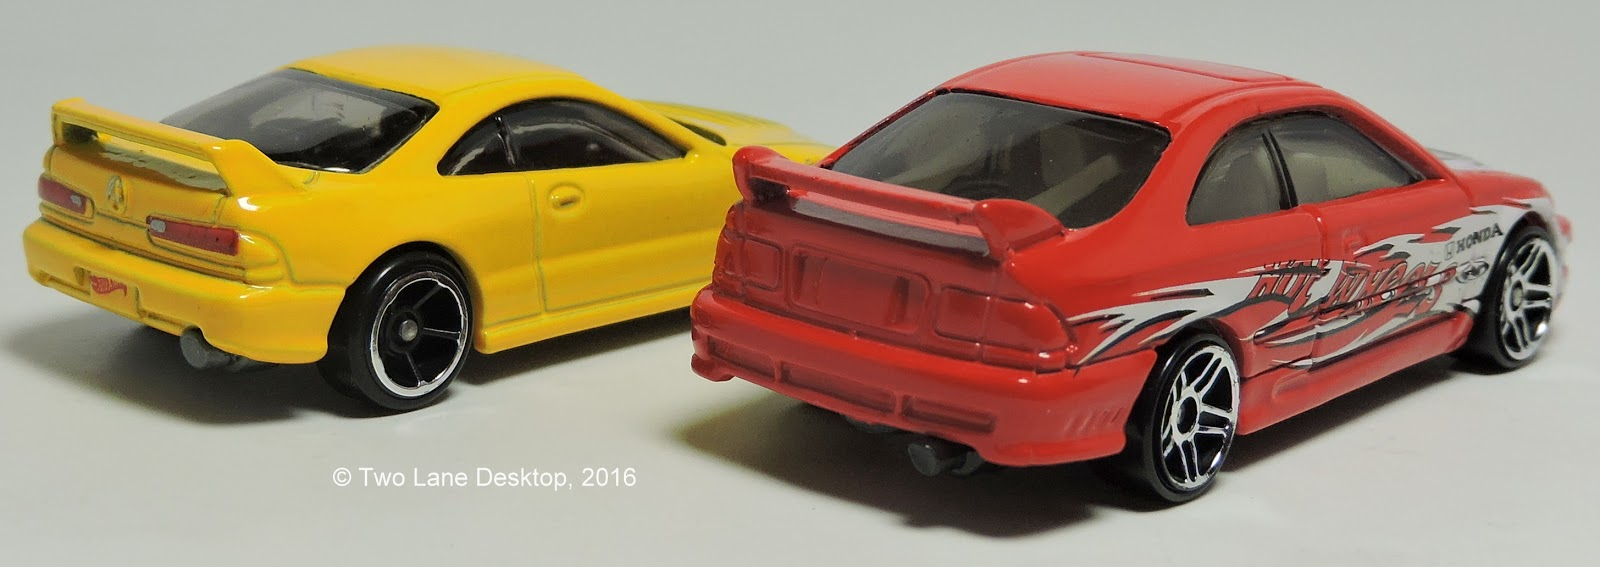 To start the onslaught of honda acura models from hot wheels this year is the long awaited acura integra and how it sizes up to the 2000 honda civic si